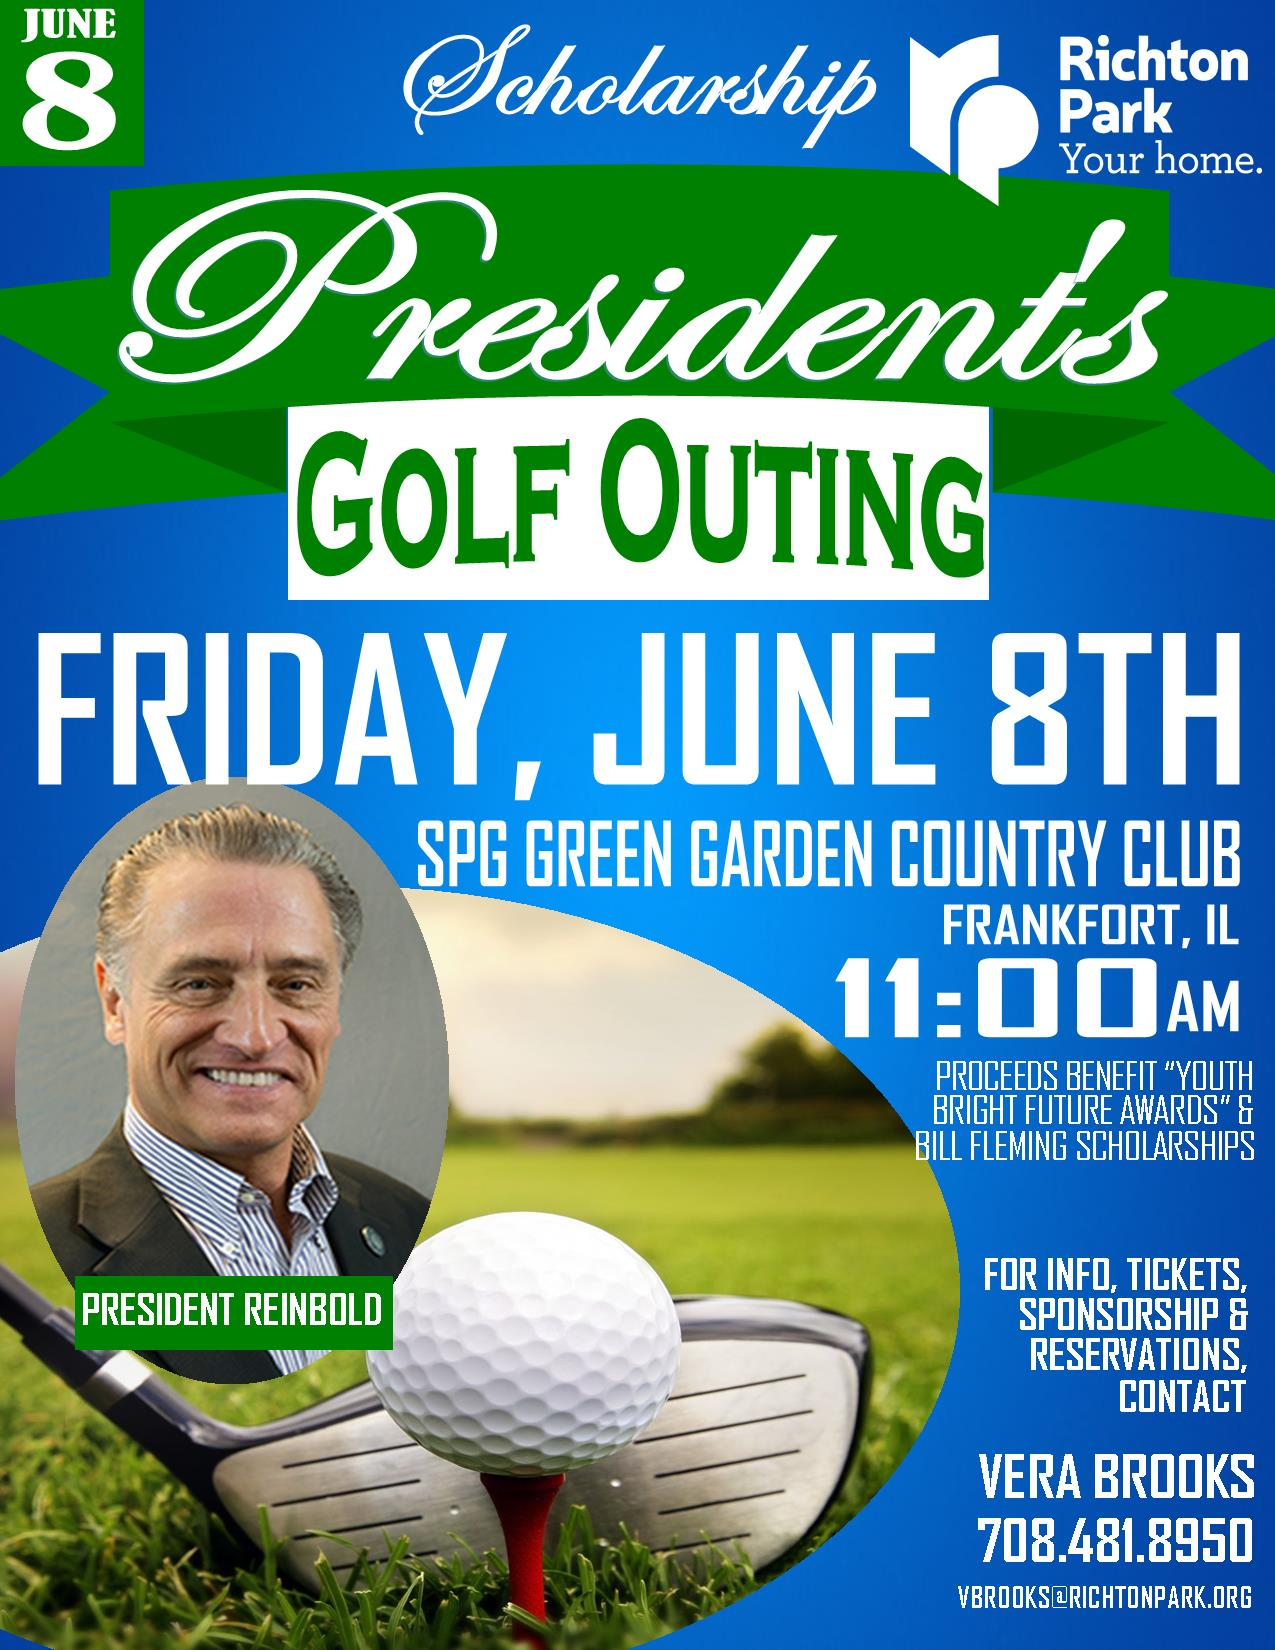 2018 Presidents Scholarship Golf Outing